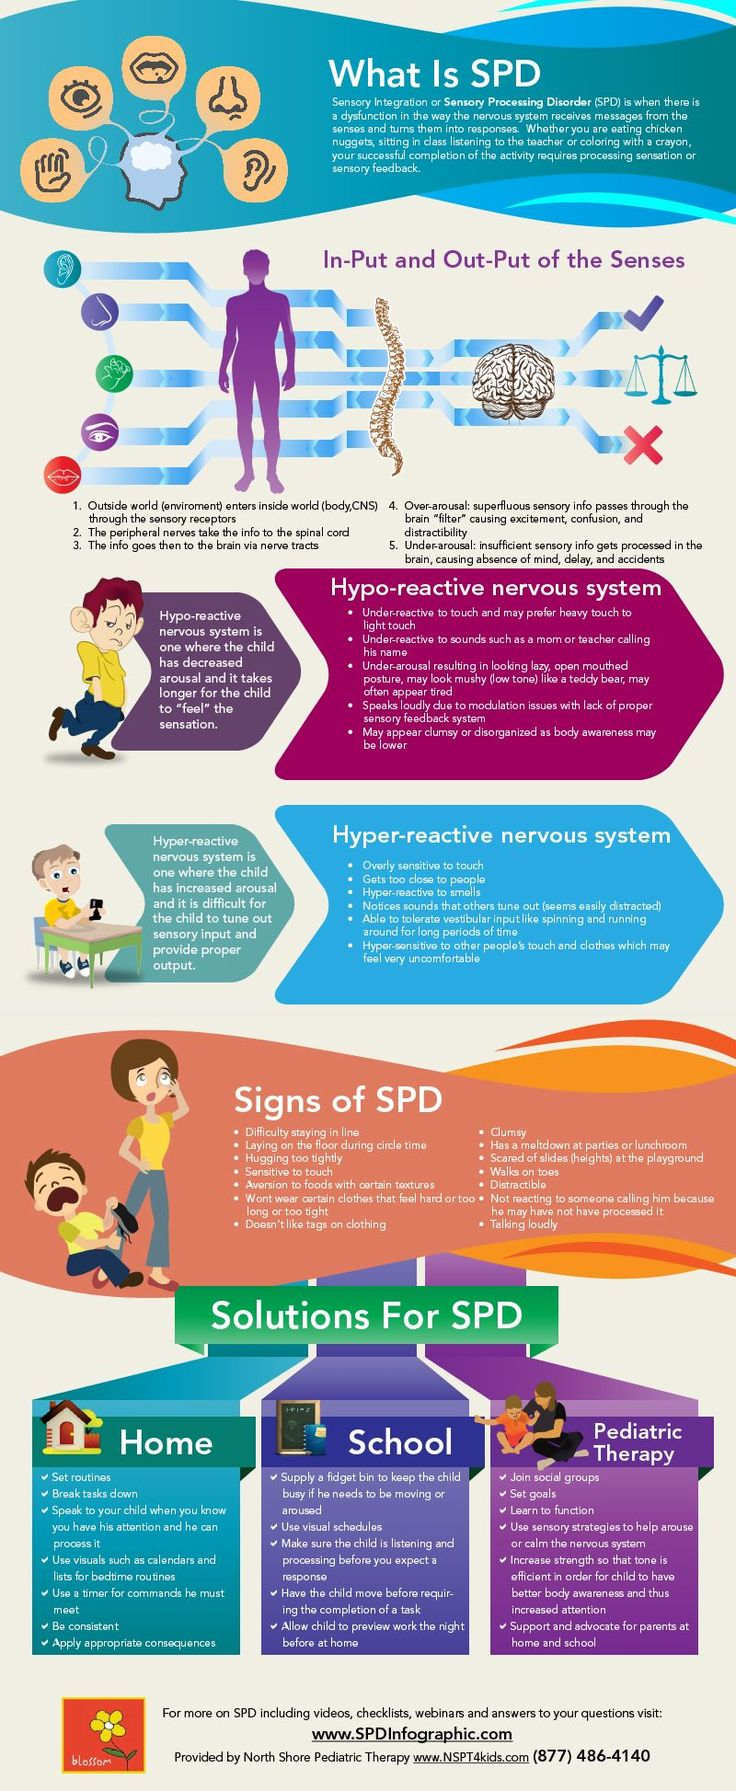 best images about child development presentation disorder spd infographic shows how our sense work what spd is signs of a sensory seeker and a sensory avoider and a list of solutions for home